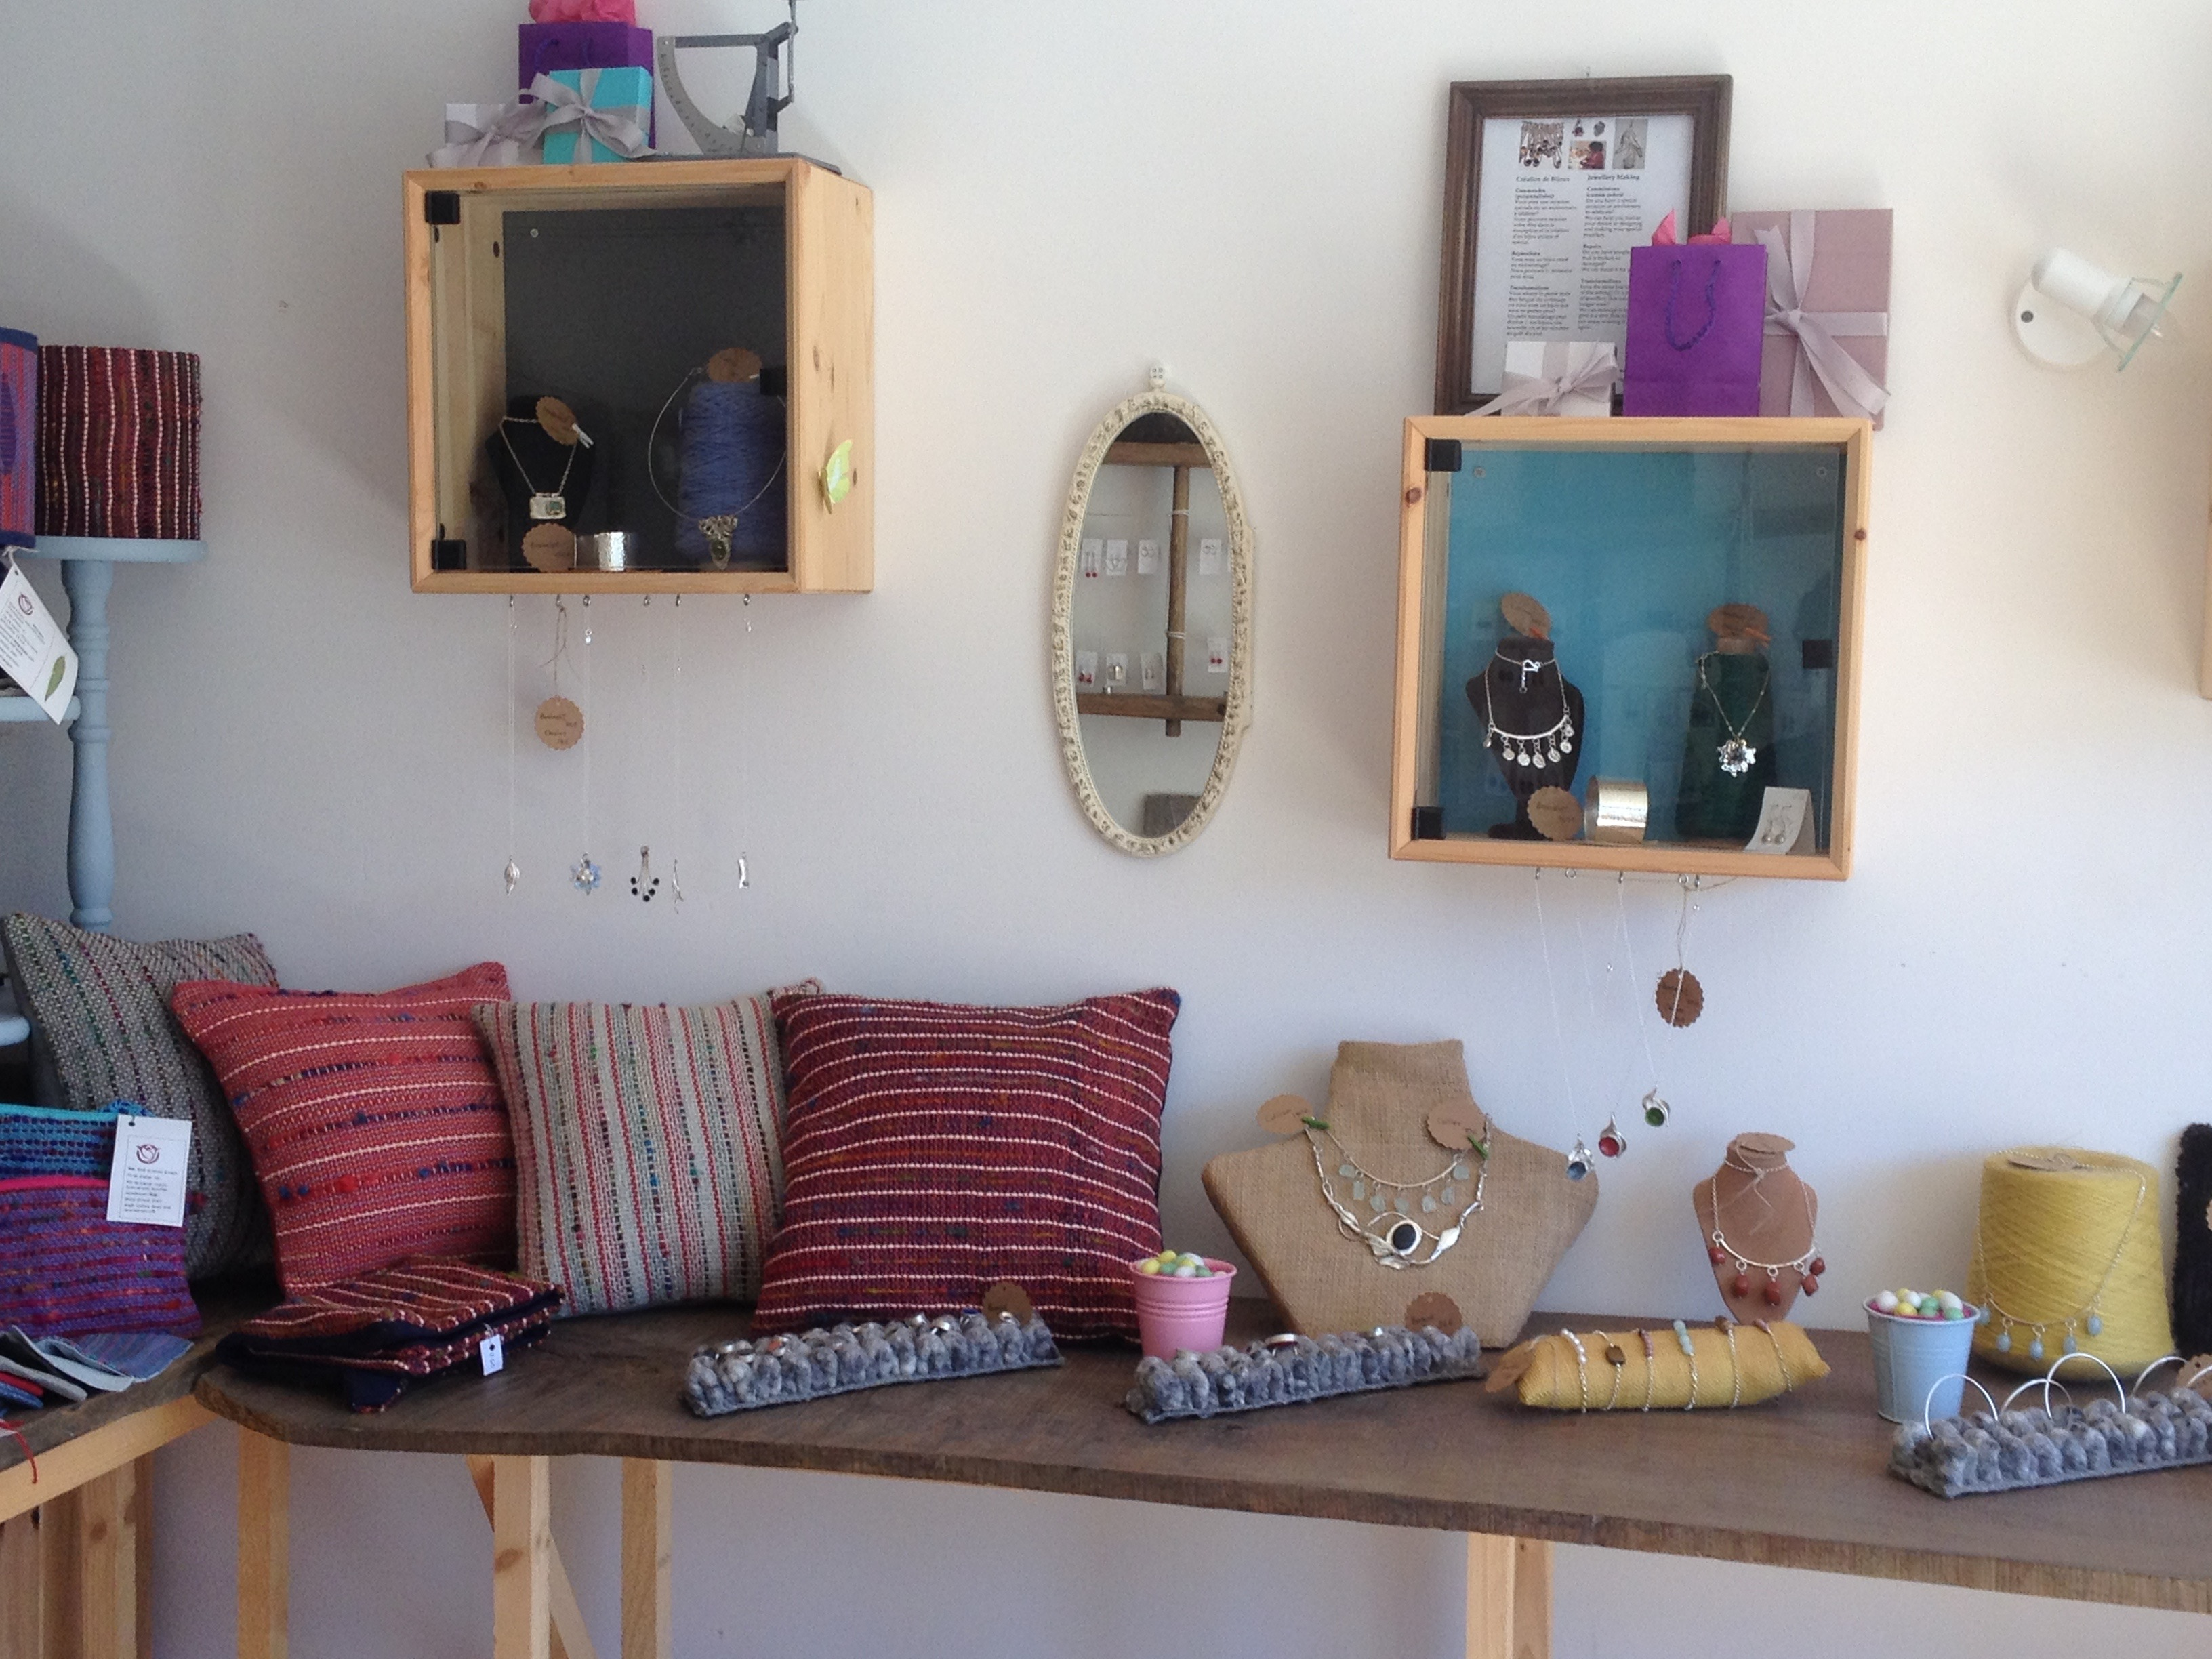 Workshop / Shop - Boutique